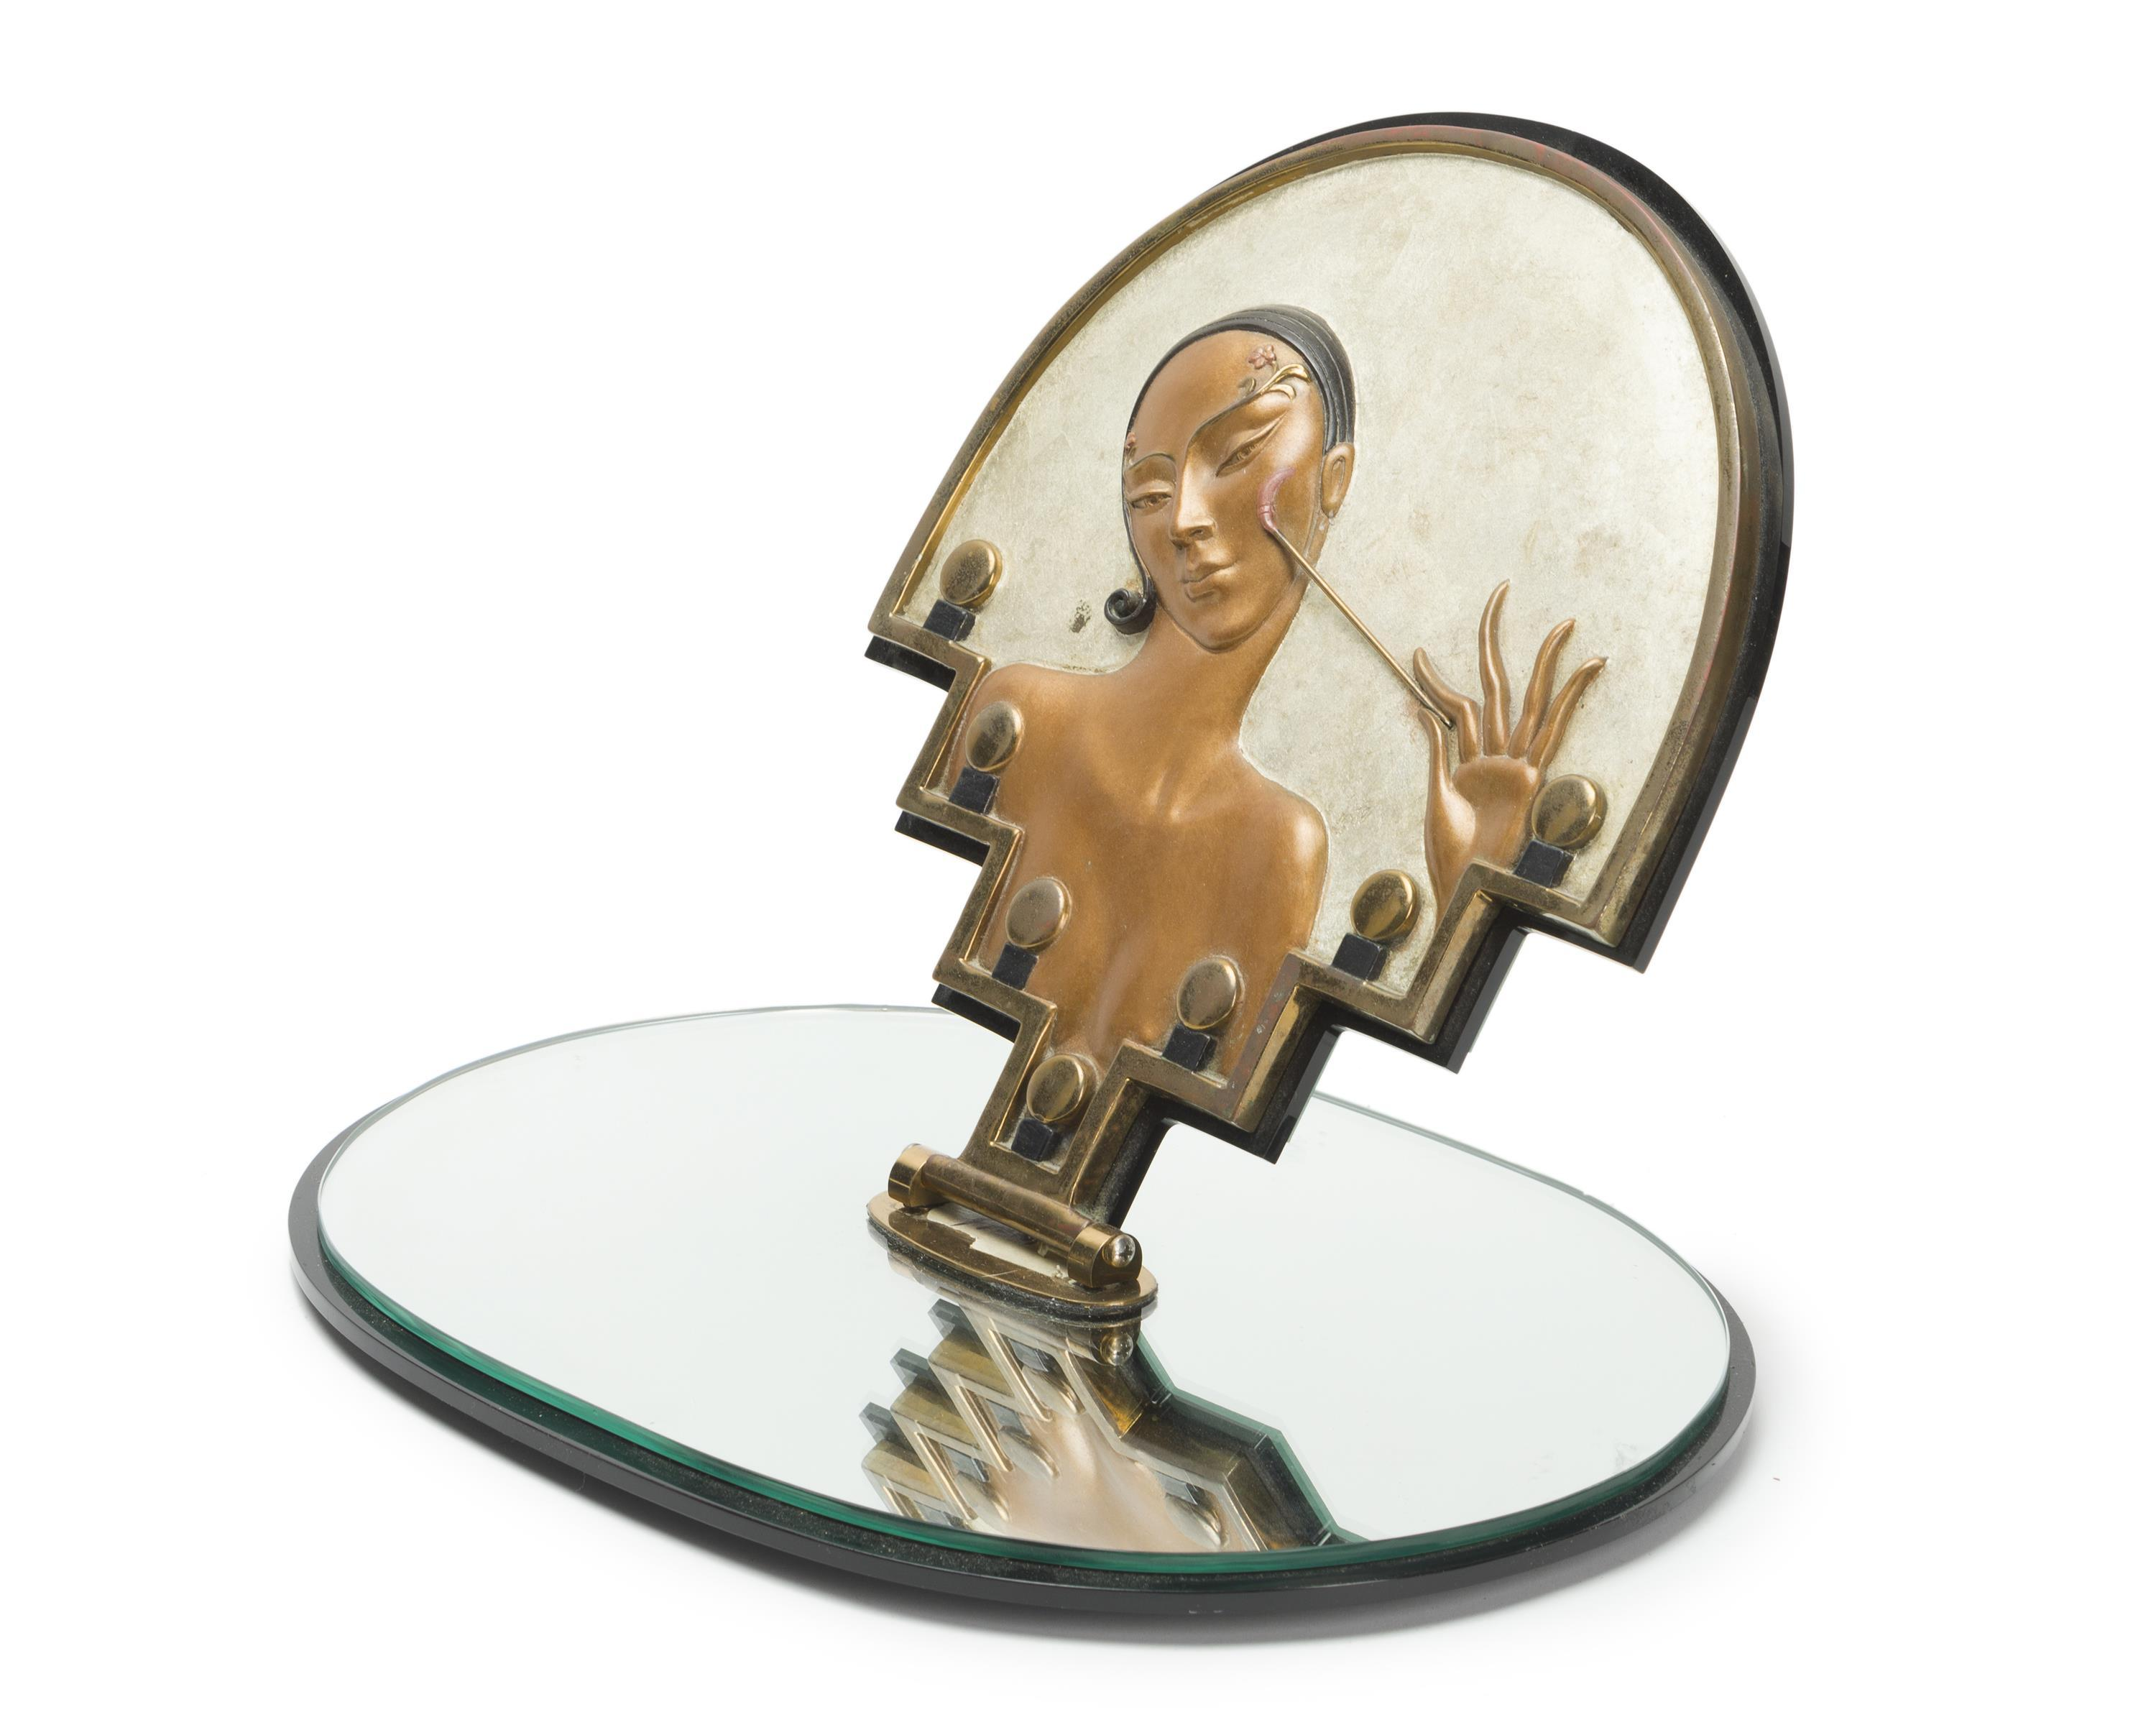 "Romain (Erté) de Tirtoff, (1892-1990 Russian), ""Vanity"" mirror, Patinated and cold-painted bronze on a mirrored swivel base, 13.5""H x 1"